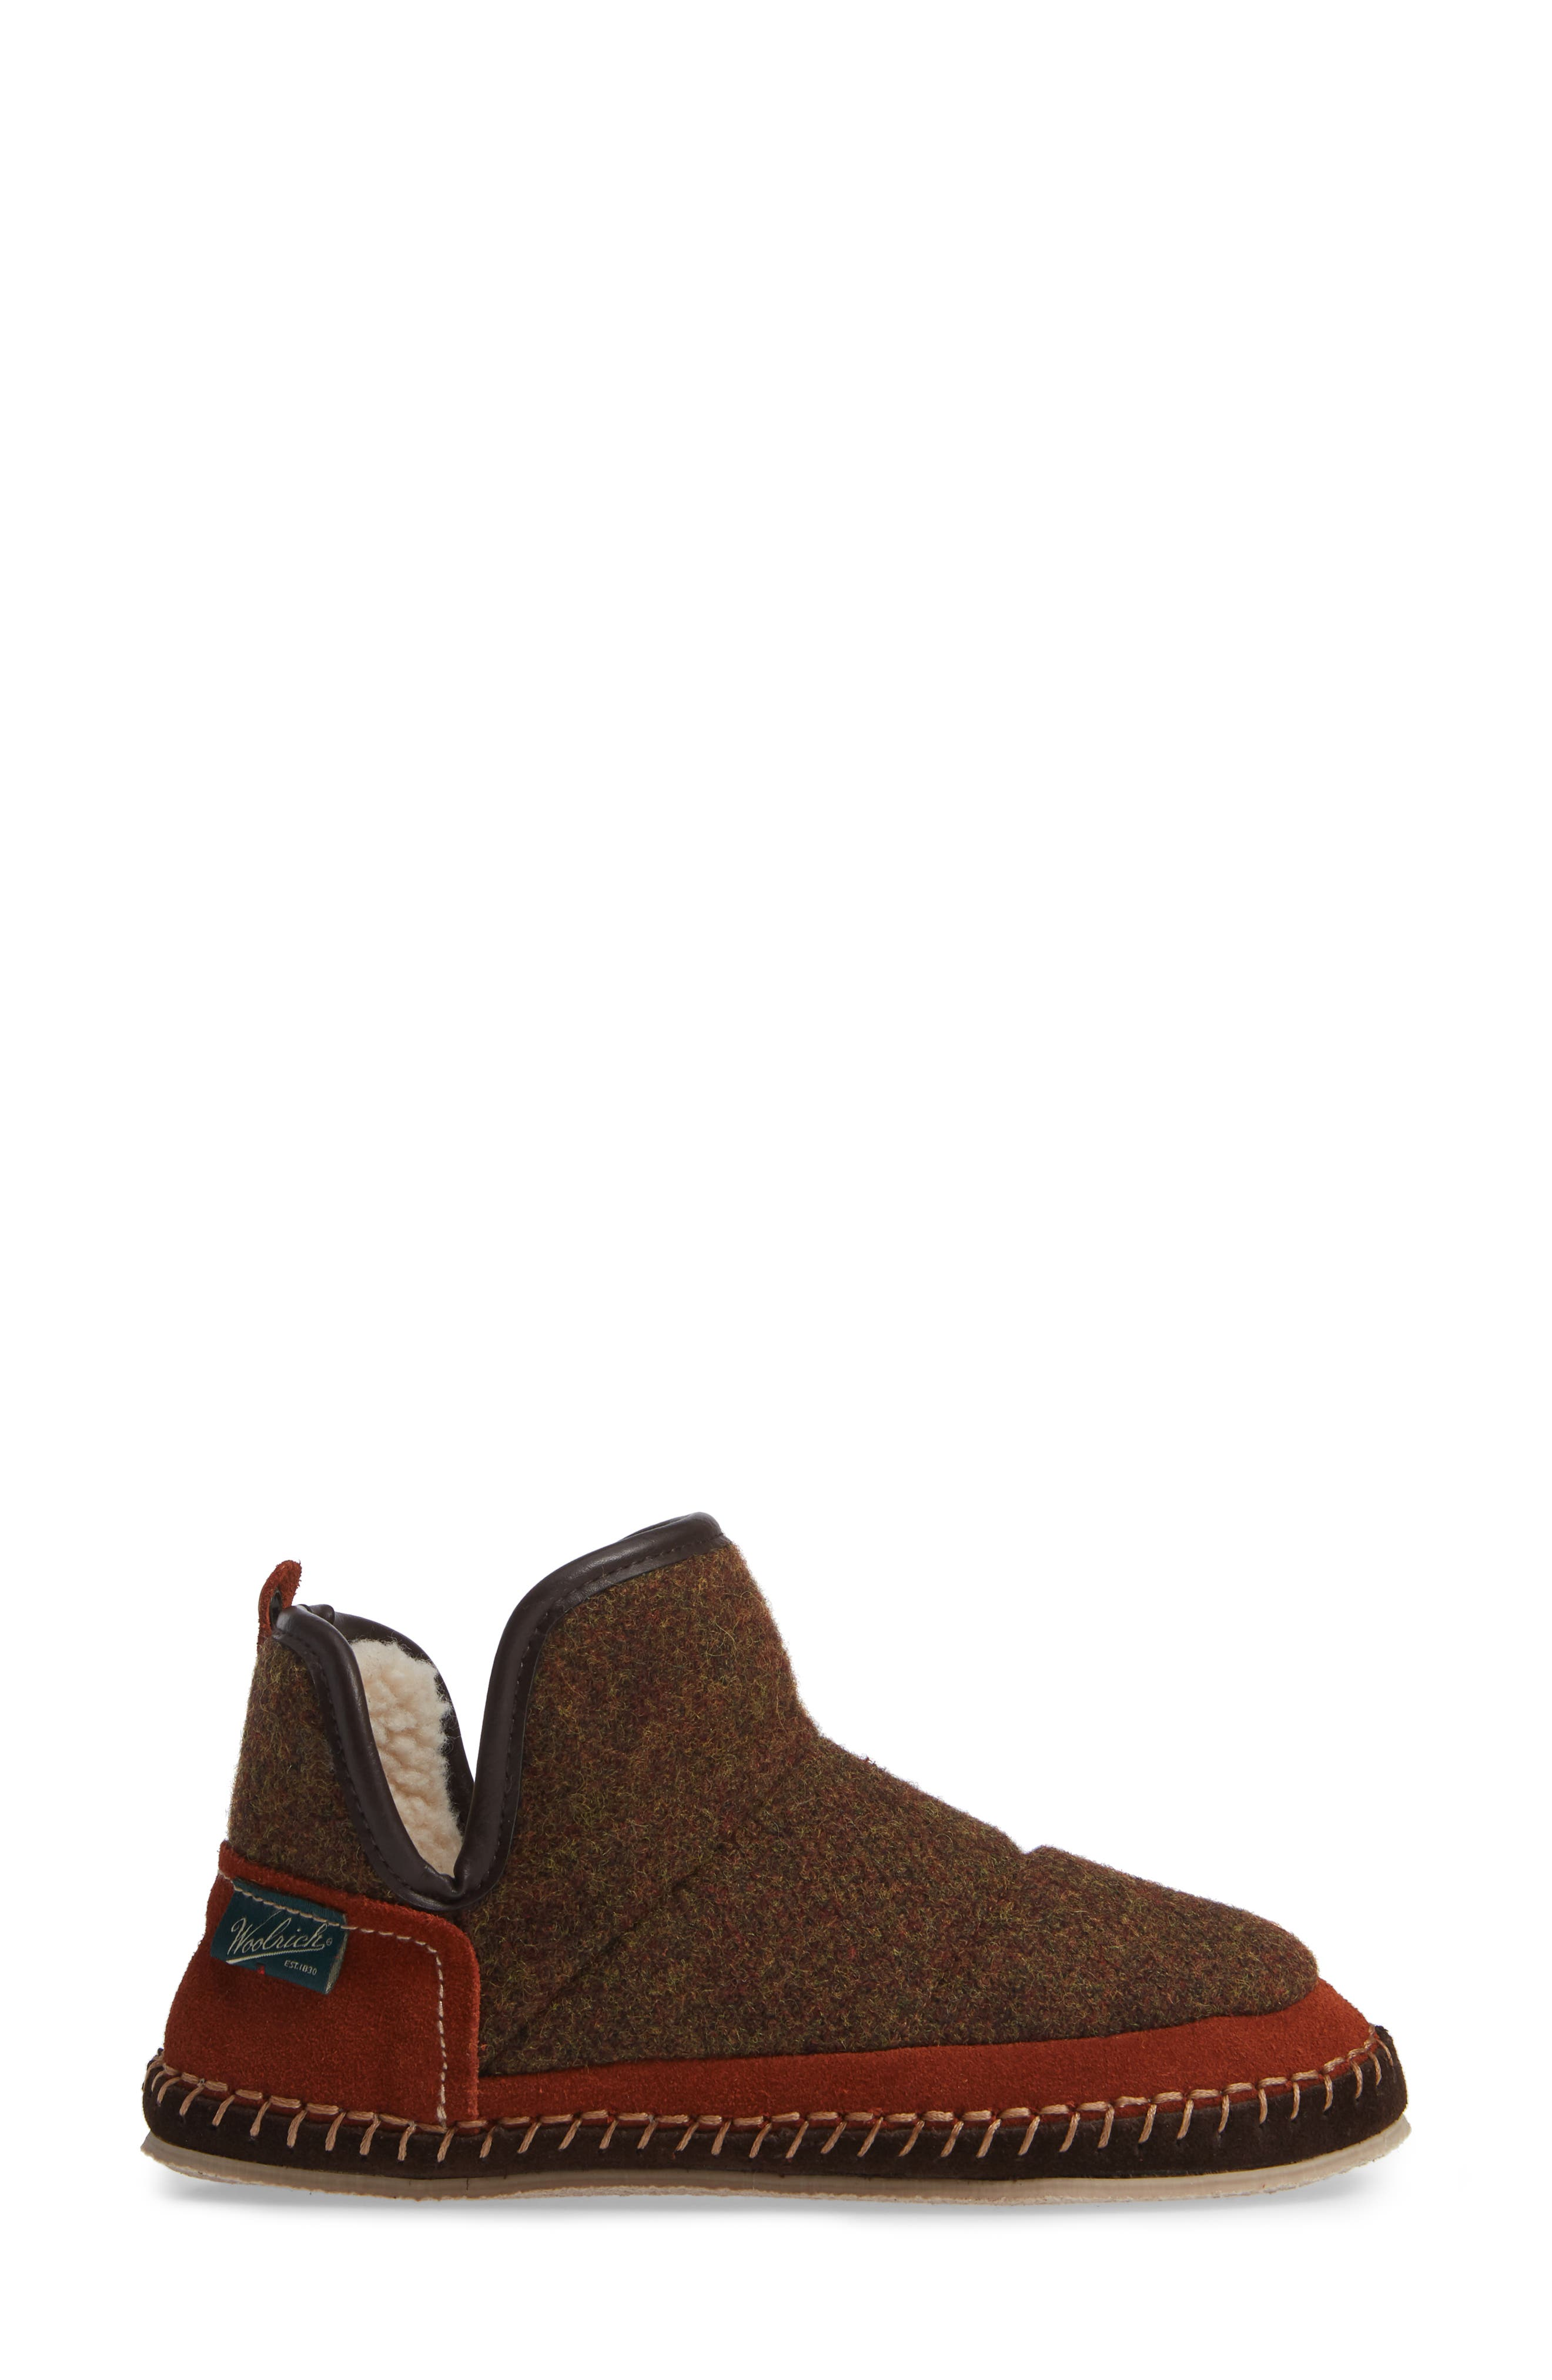 WOOLRICH,                             Glamper Slipper Bootie,                             Alternate thumbnail 3, color,                             SPICED CIDER WOOL